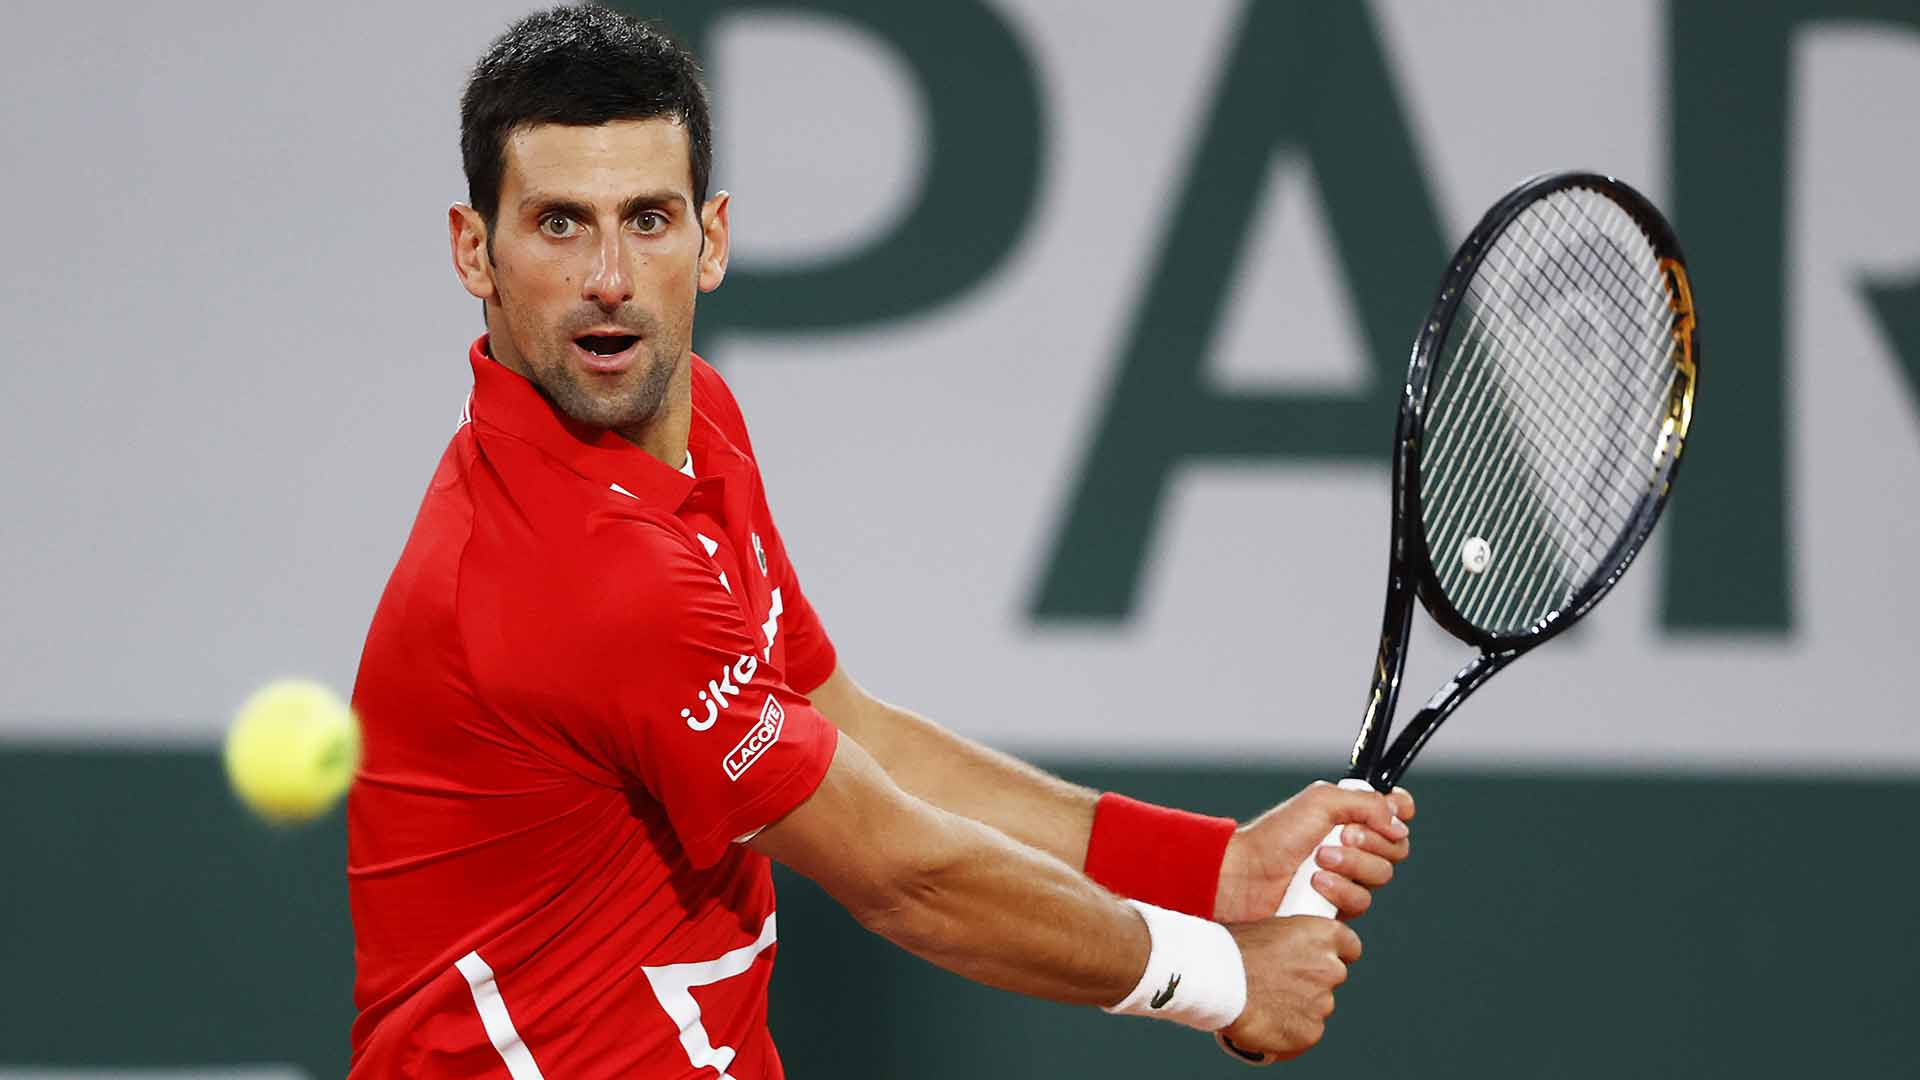 Novak Djokovic is chasing his 18th Grand Slam title.